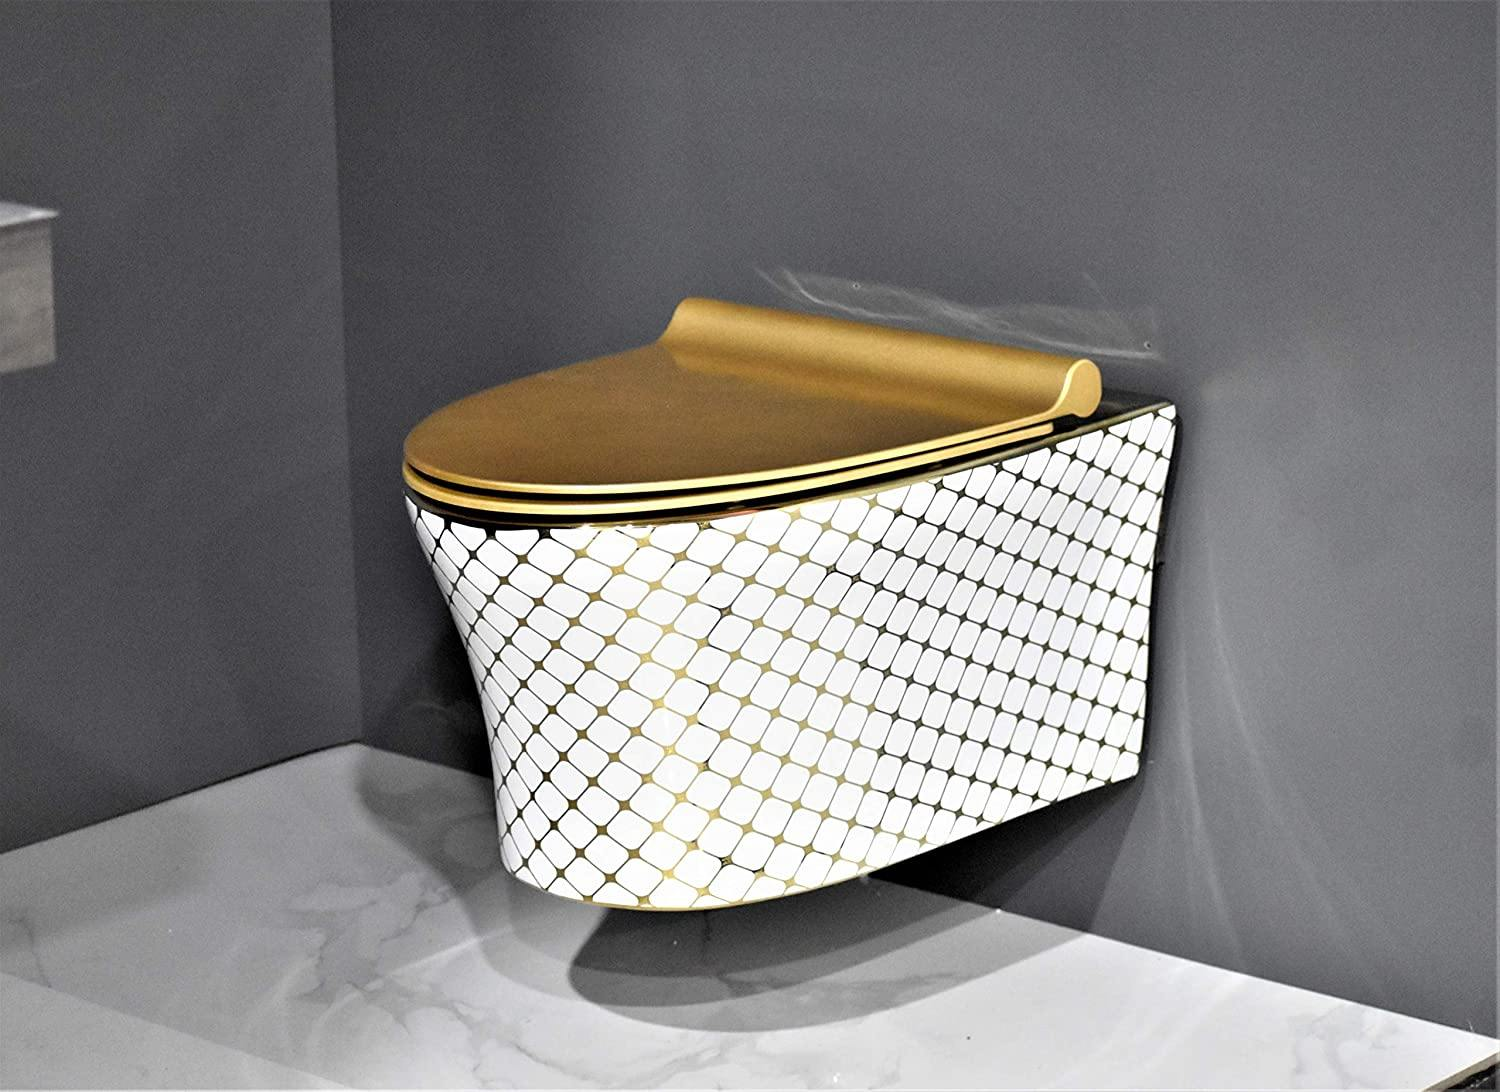 Wall Hung Toilet Bowl Bathroom Oval Toilet Bowl Wall Mount Toilet With Rimless Flush 56 x 38 x 36 CM Gold White Color